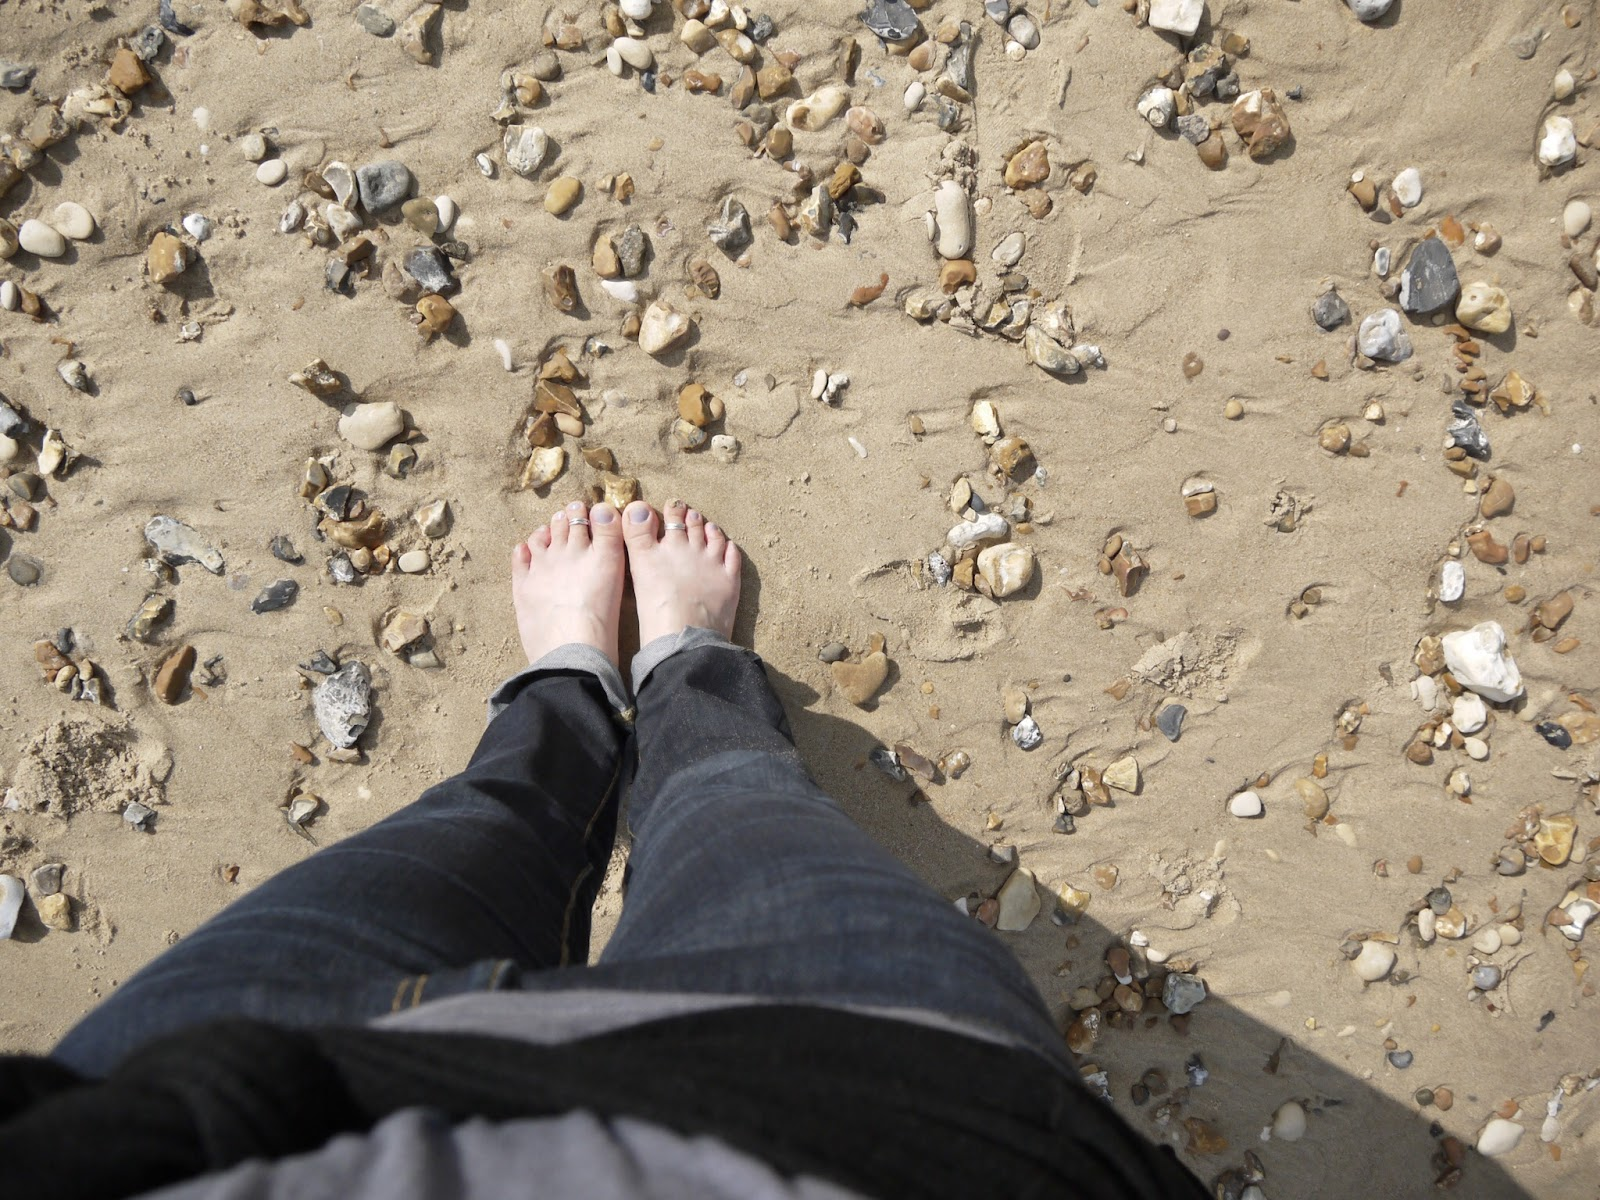 plages anglaises - angleterre bord de mer